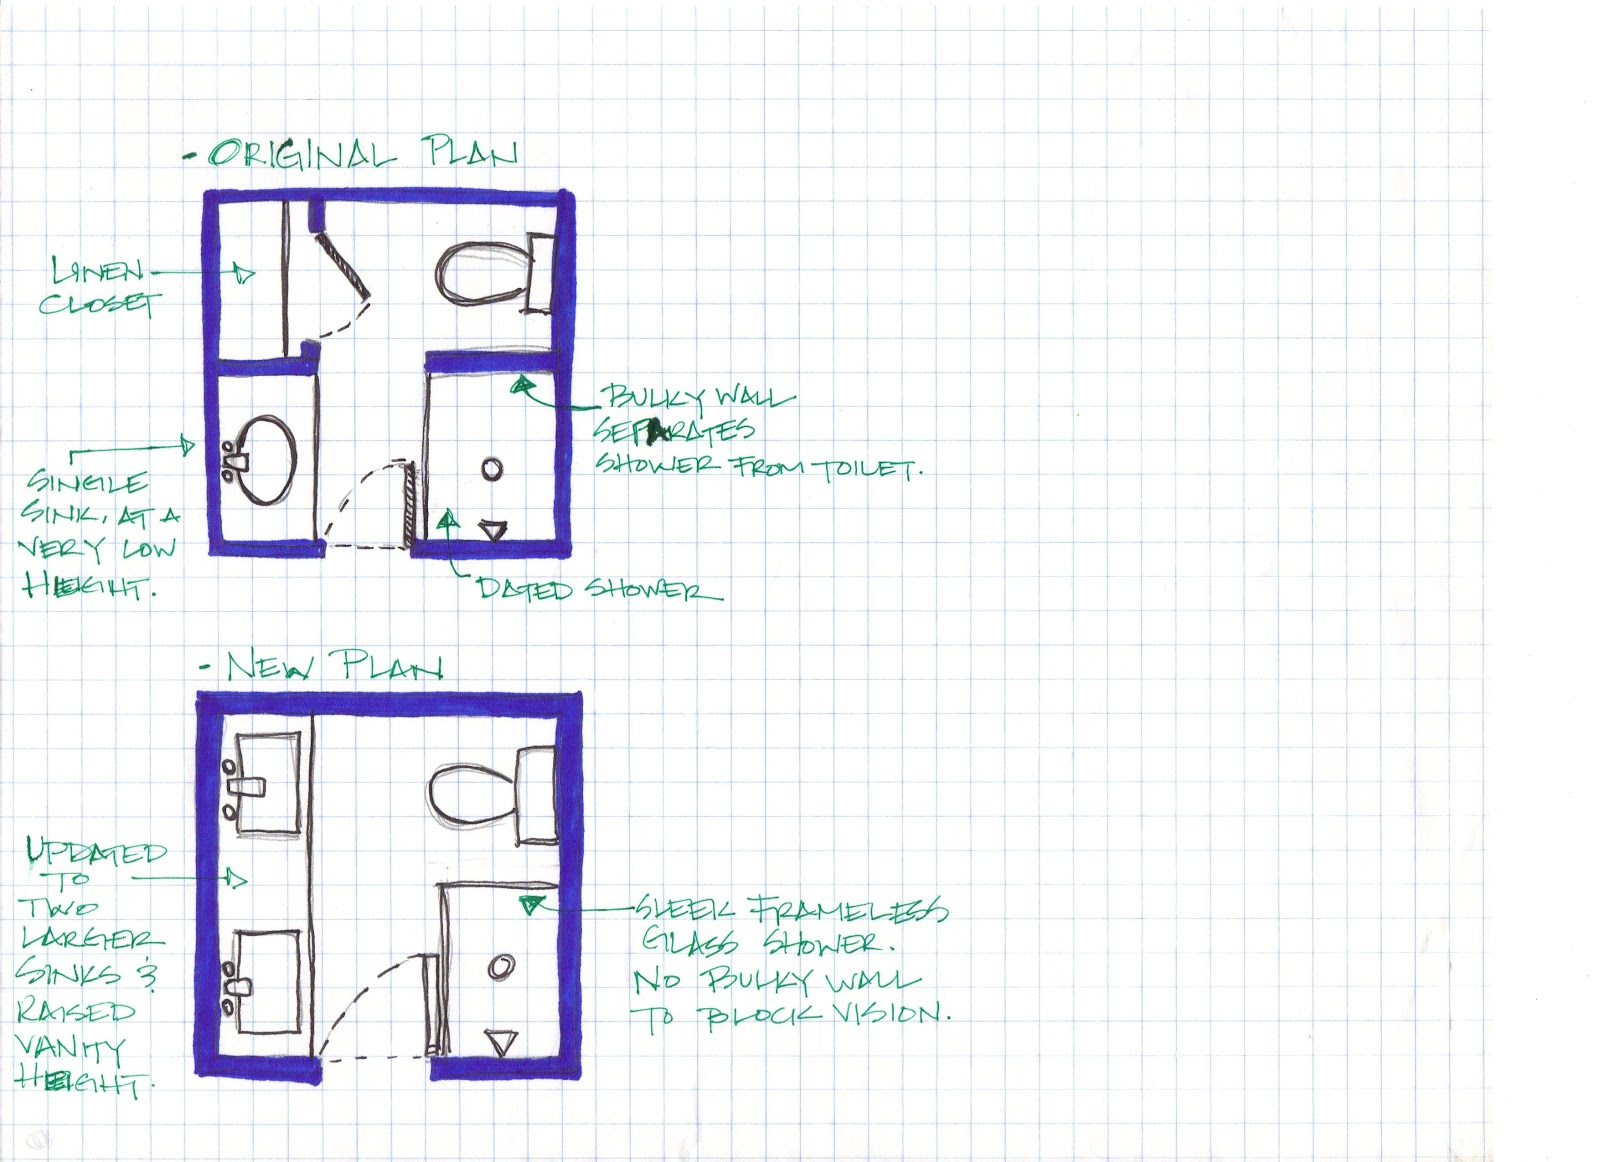 8 x 10 master bathroom layout - Half Bath Designs Wont Bore You With My Technical Cad Drawings Half Bath Designs What